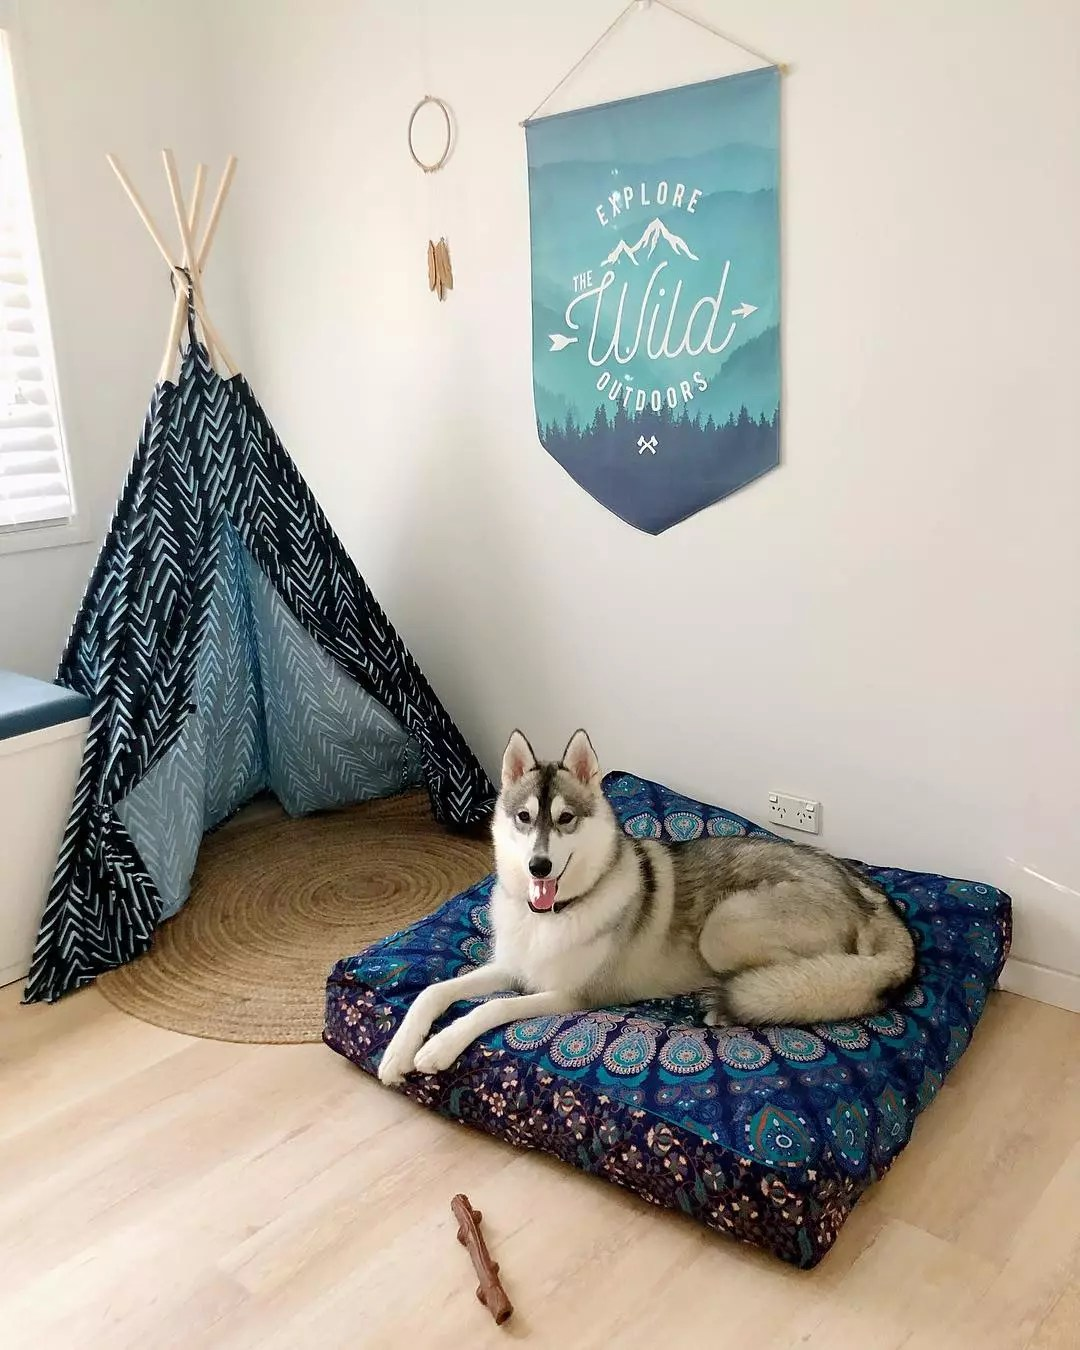 Dog Relaxing in Room with Tent and Bed. Photo by Instagram user @_life_of_nirvana_